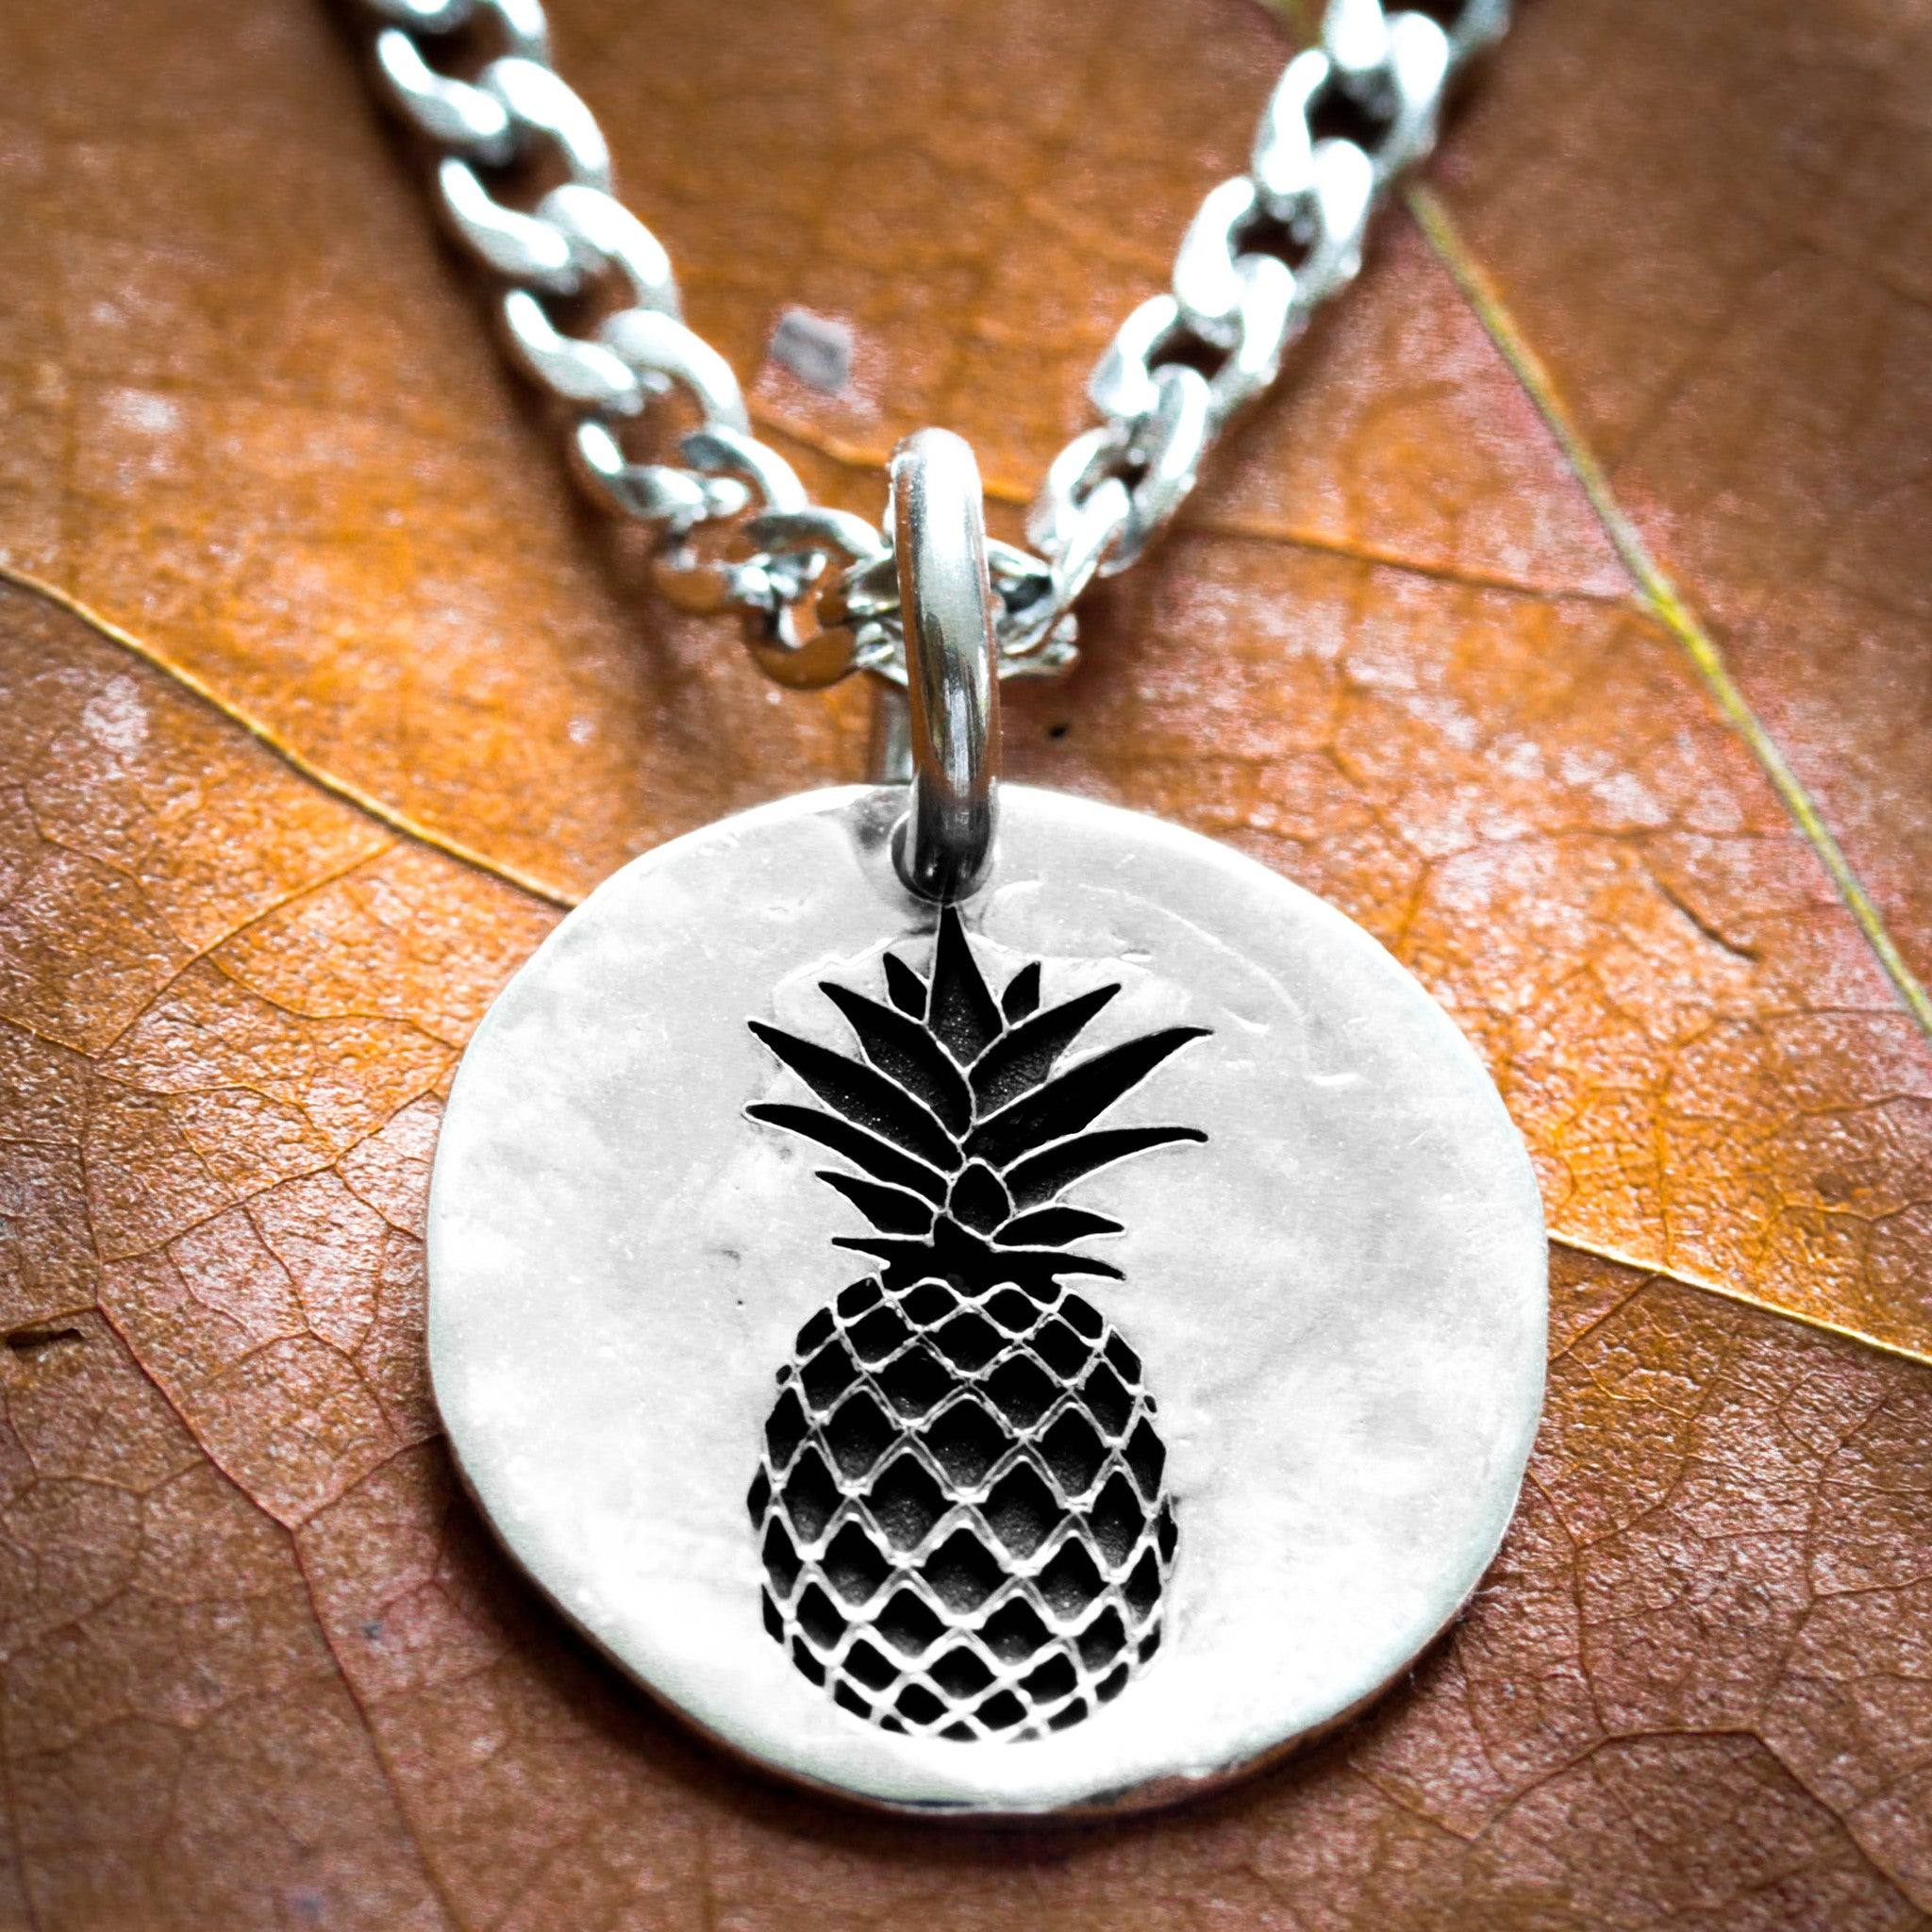 brushed necklace handcrafted best spinningdaisy metal products sellers fruit pineapple collections